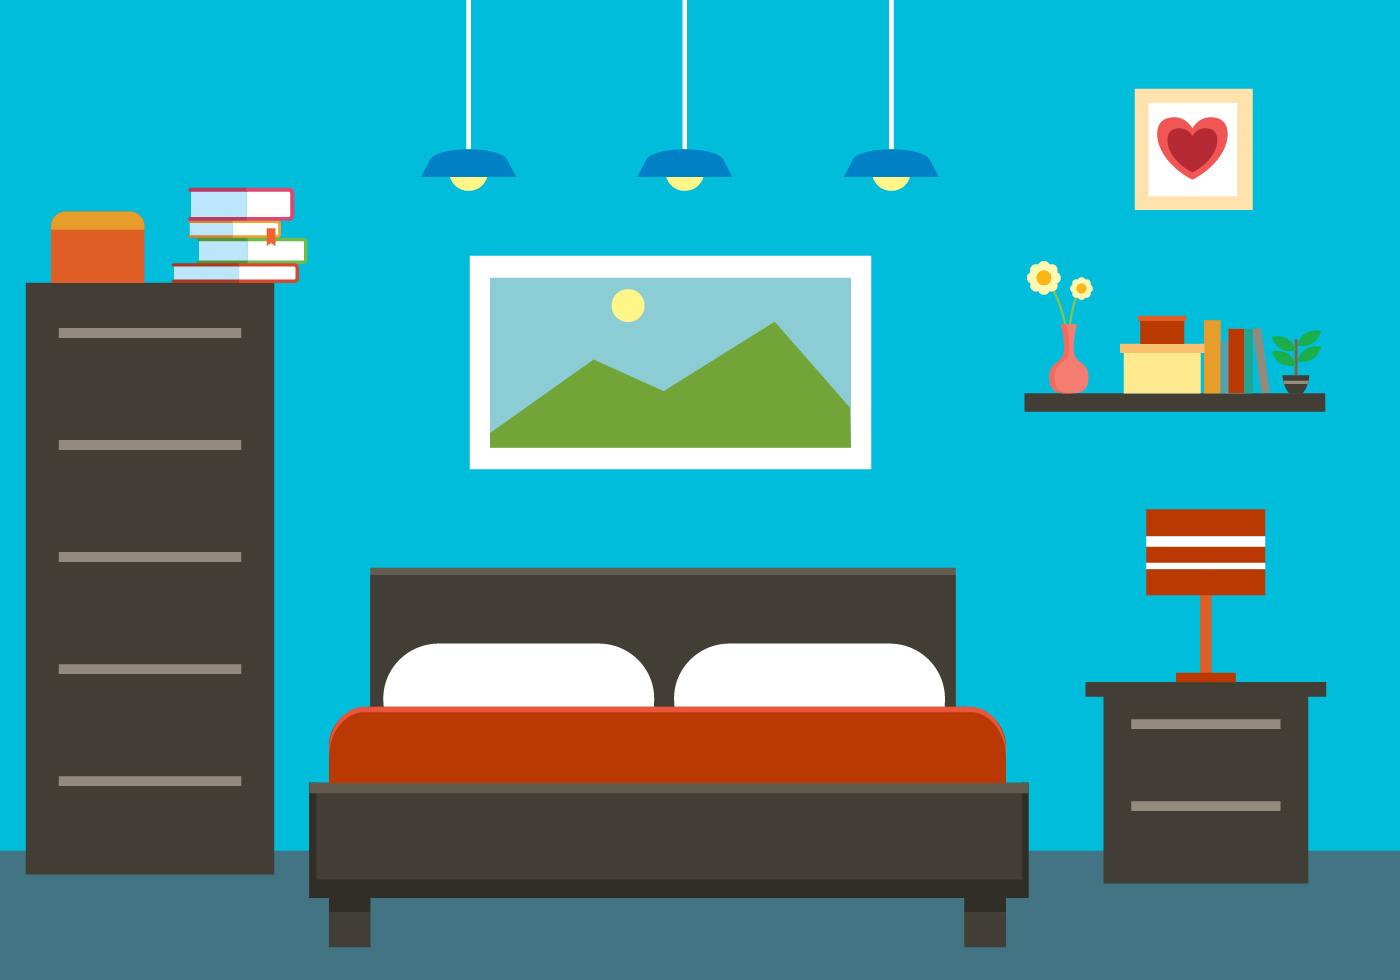 Free Flat Bedroom Interior Vector Illustration - Download ...